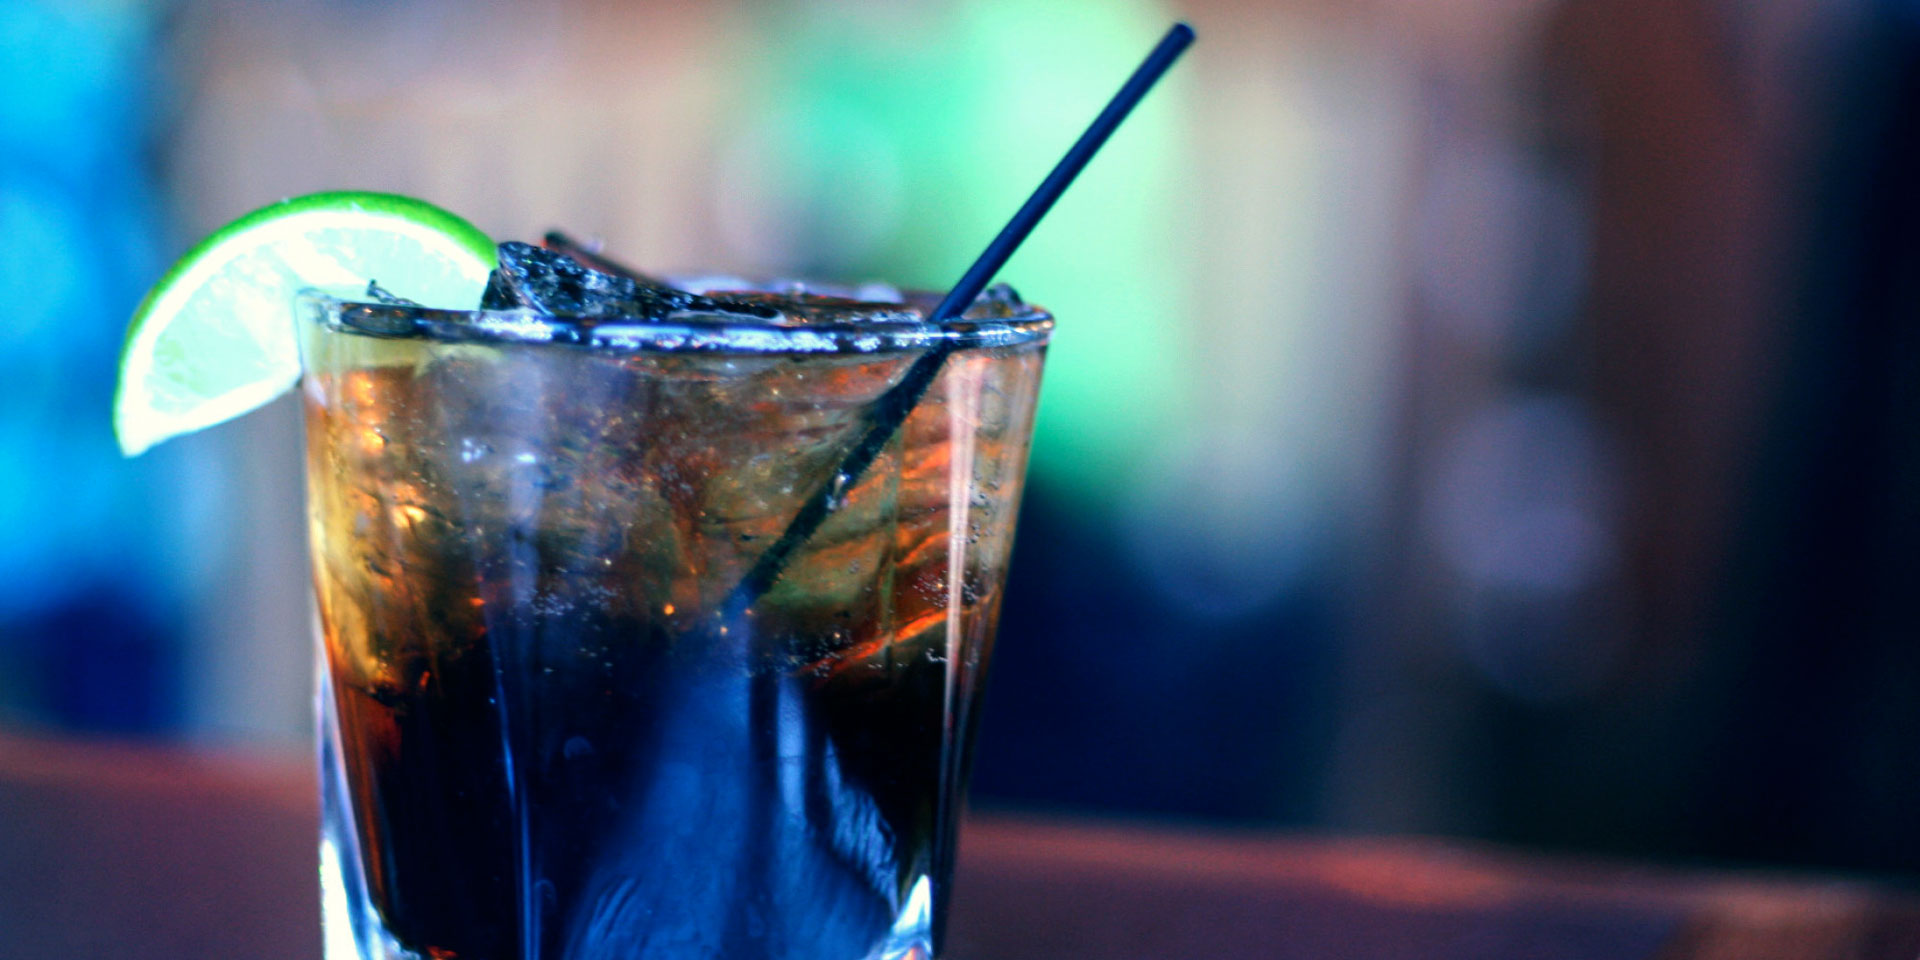 Why are hotels throughout the world suddenly ditching plastic straws?